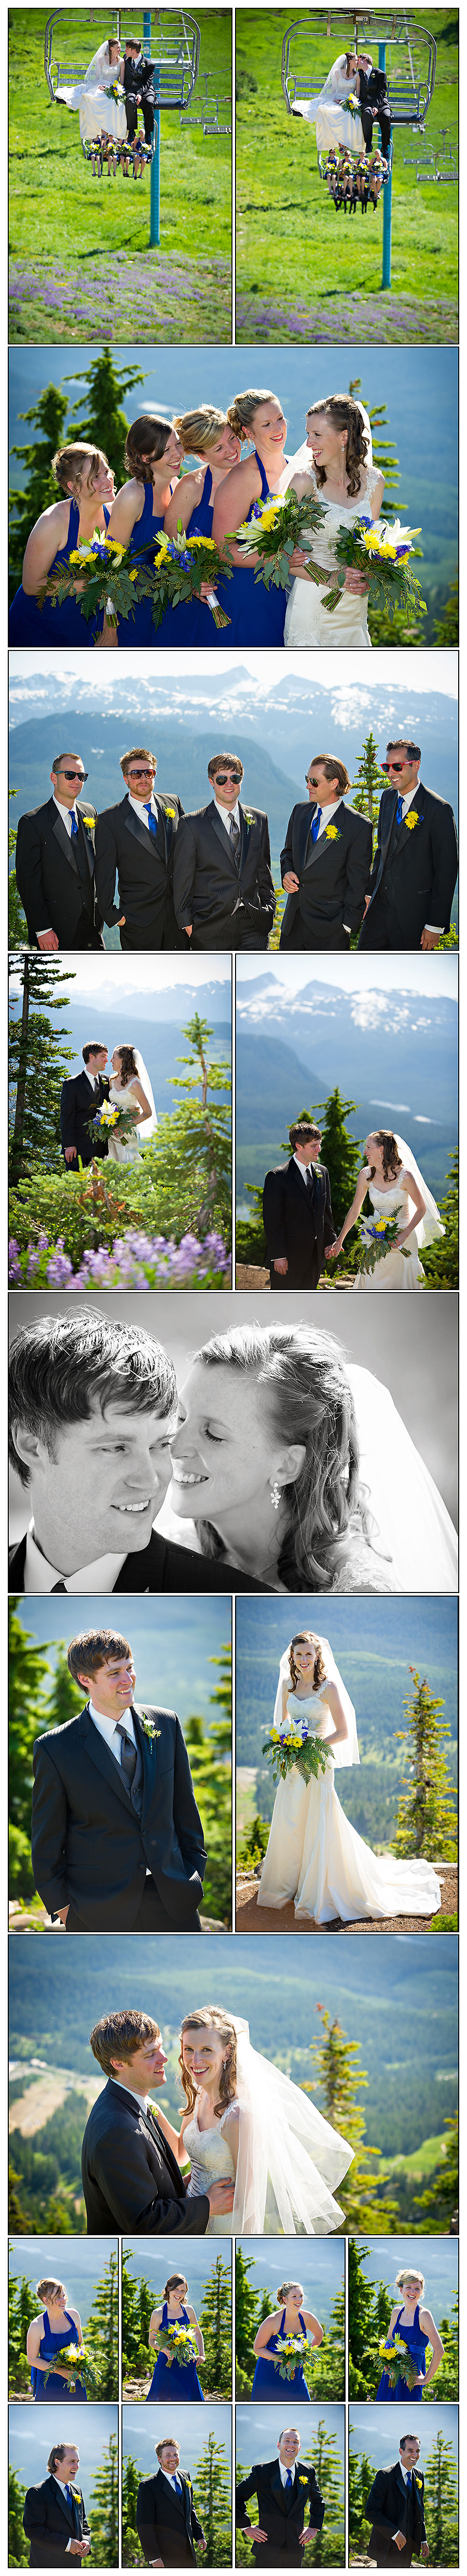 Mt. Washington Ski Resort, Vancouver Island, wedding photographer, Victoria B.C.